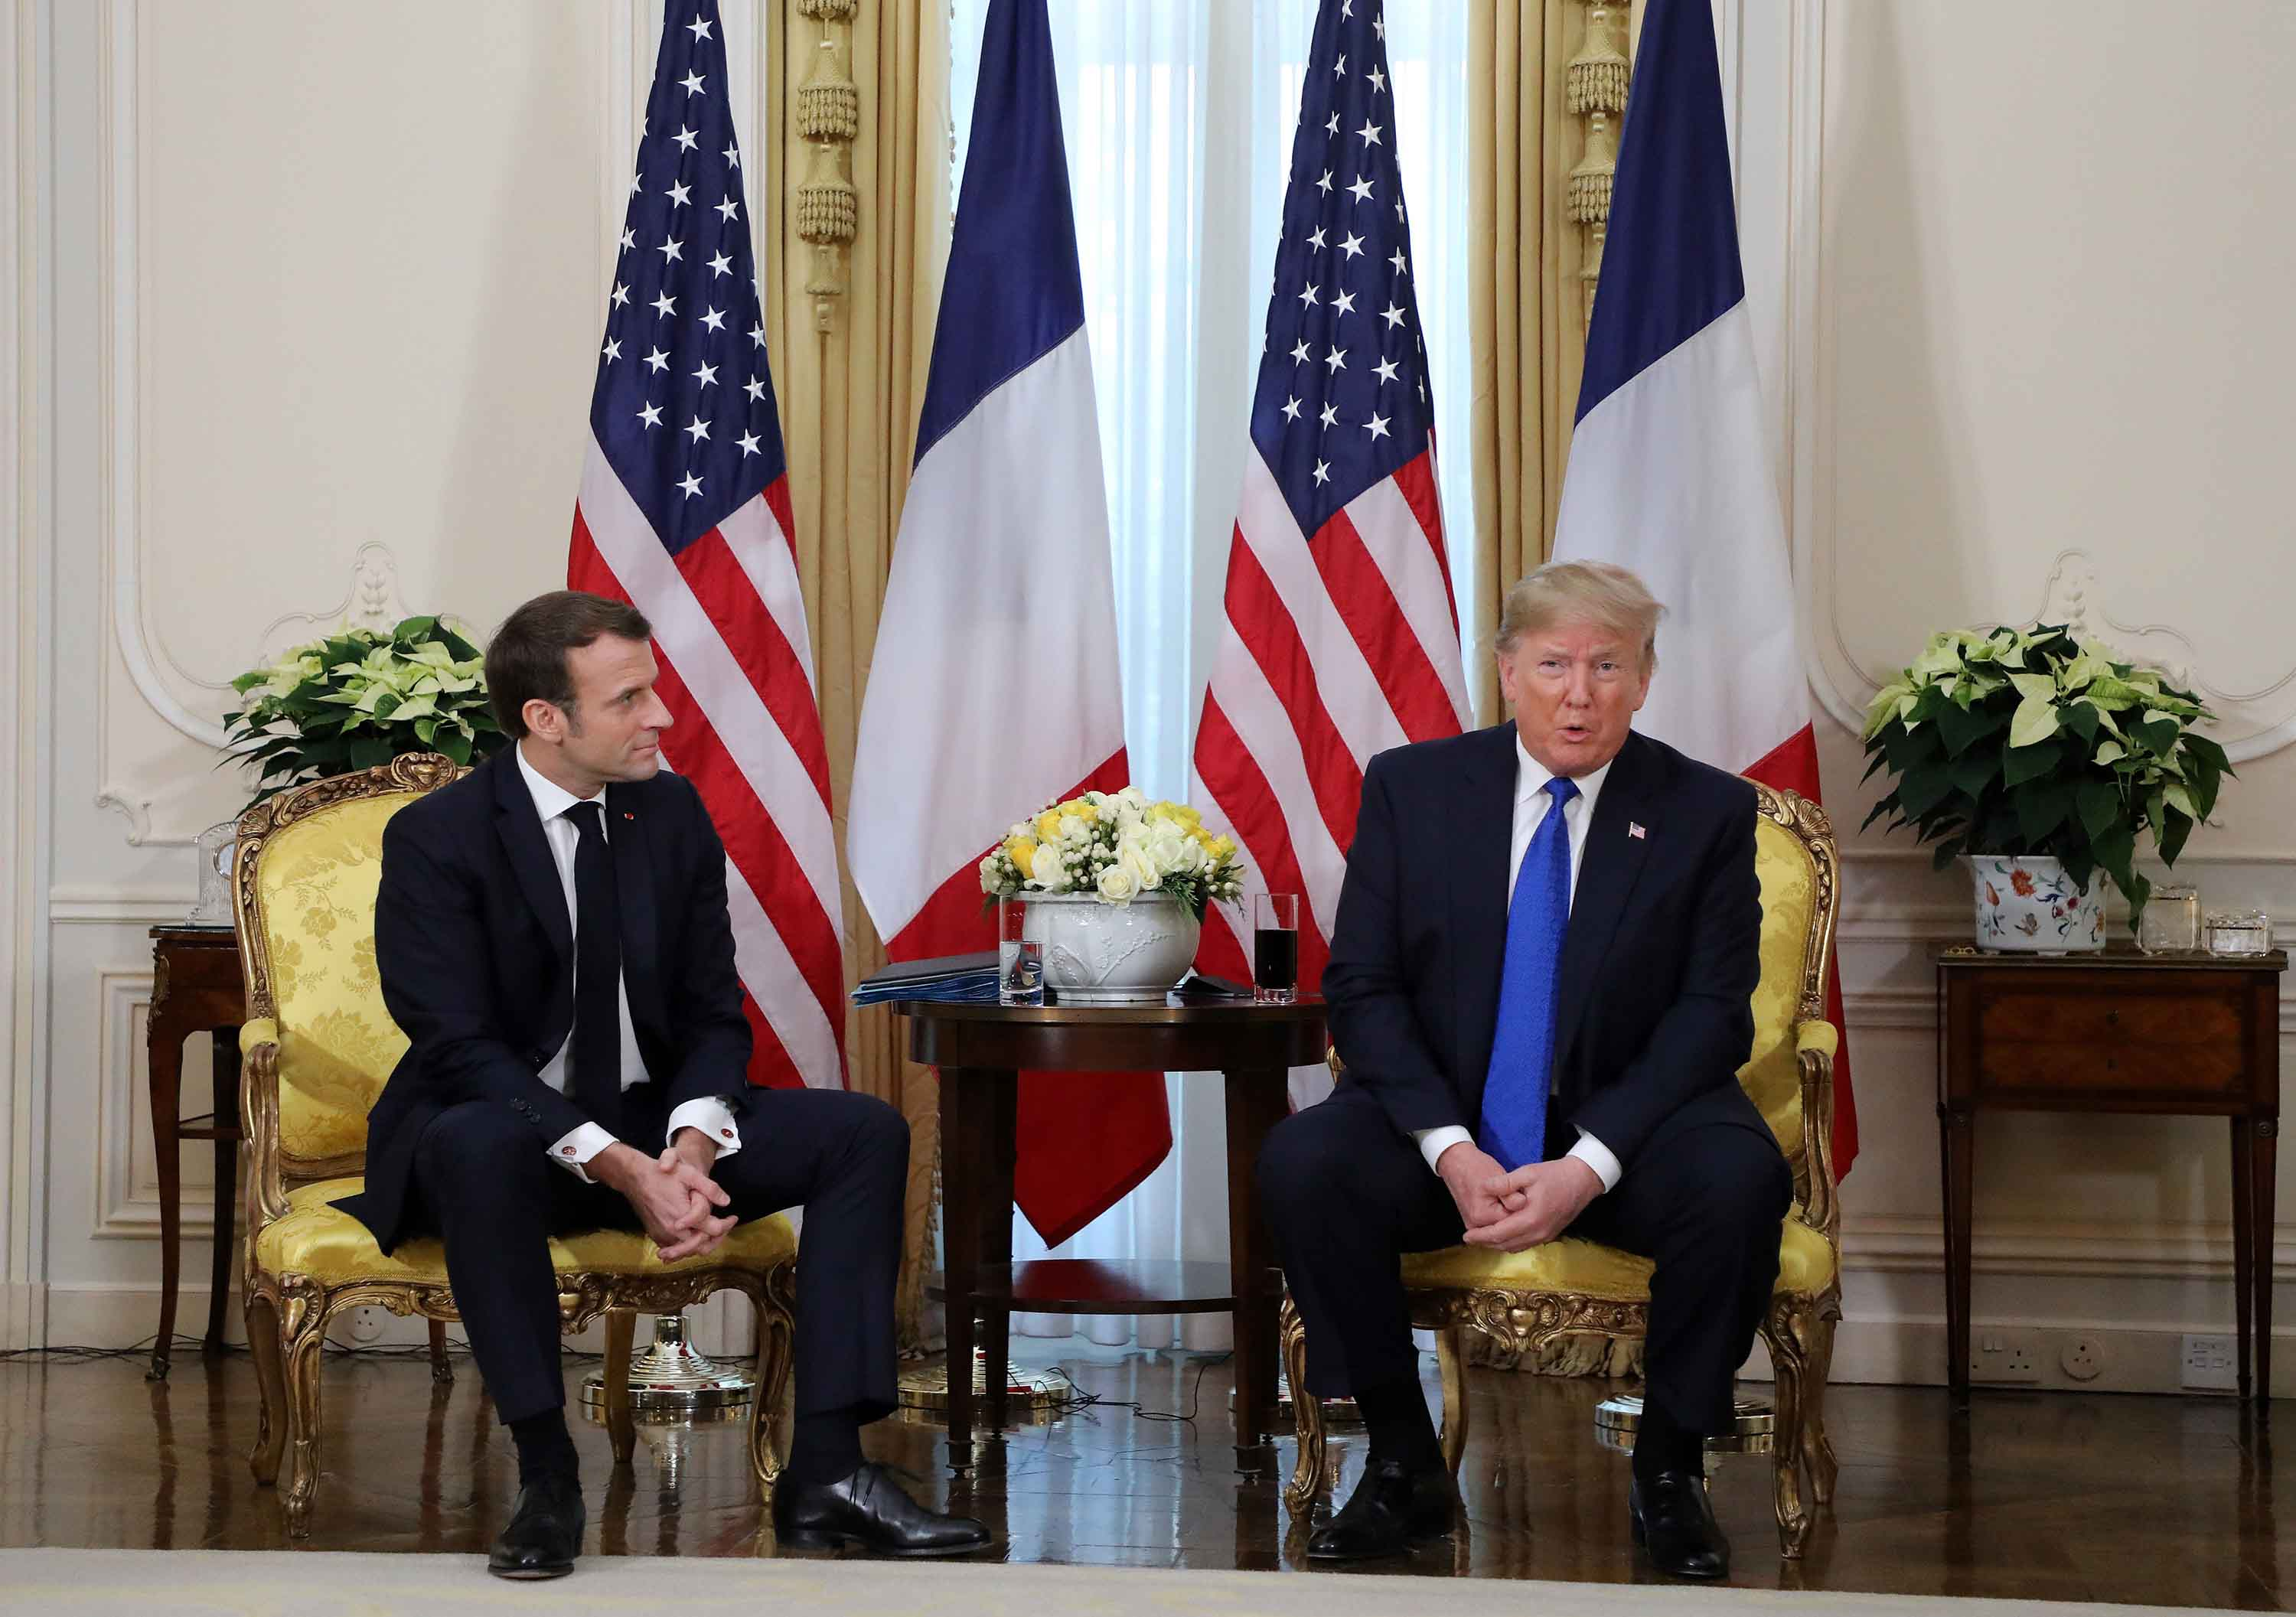 France's President Emmanuel Macron meets with President Trump at Winfield House in London on Tuesday.